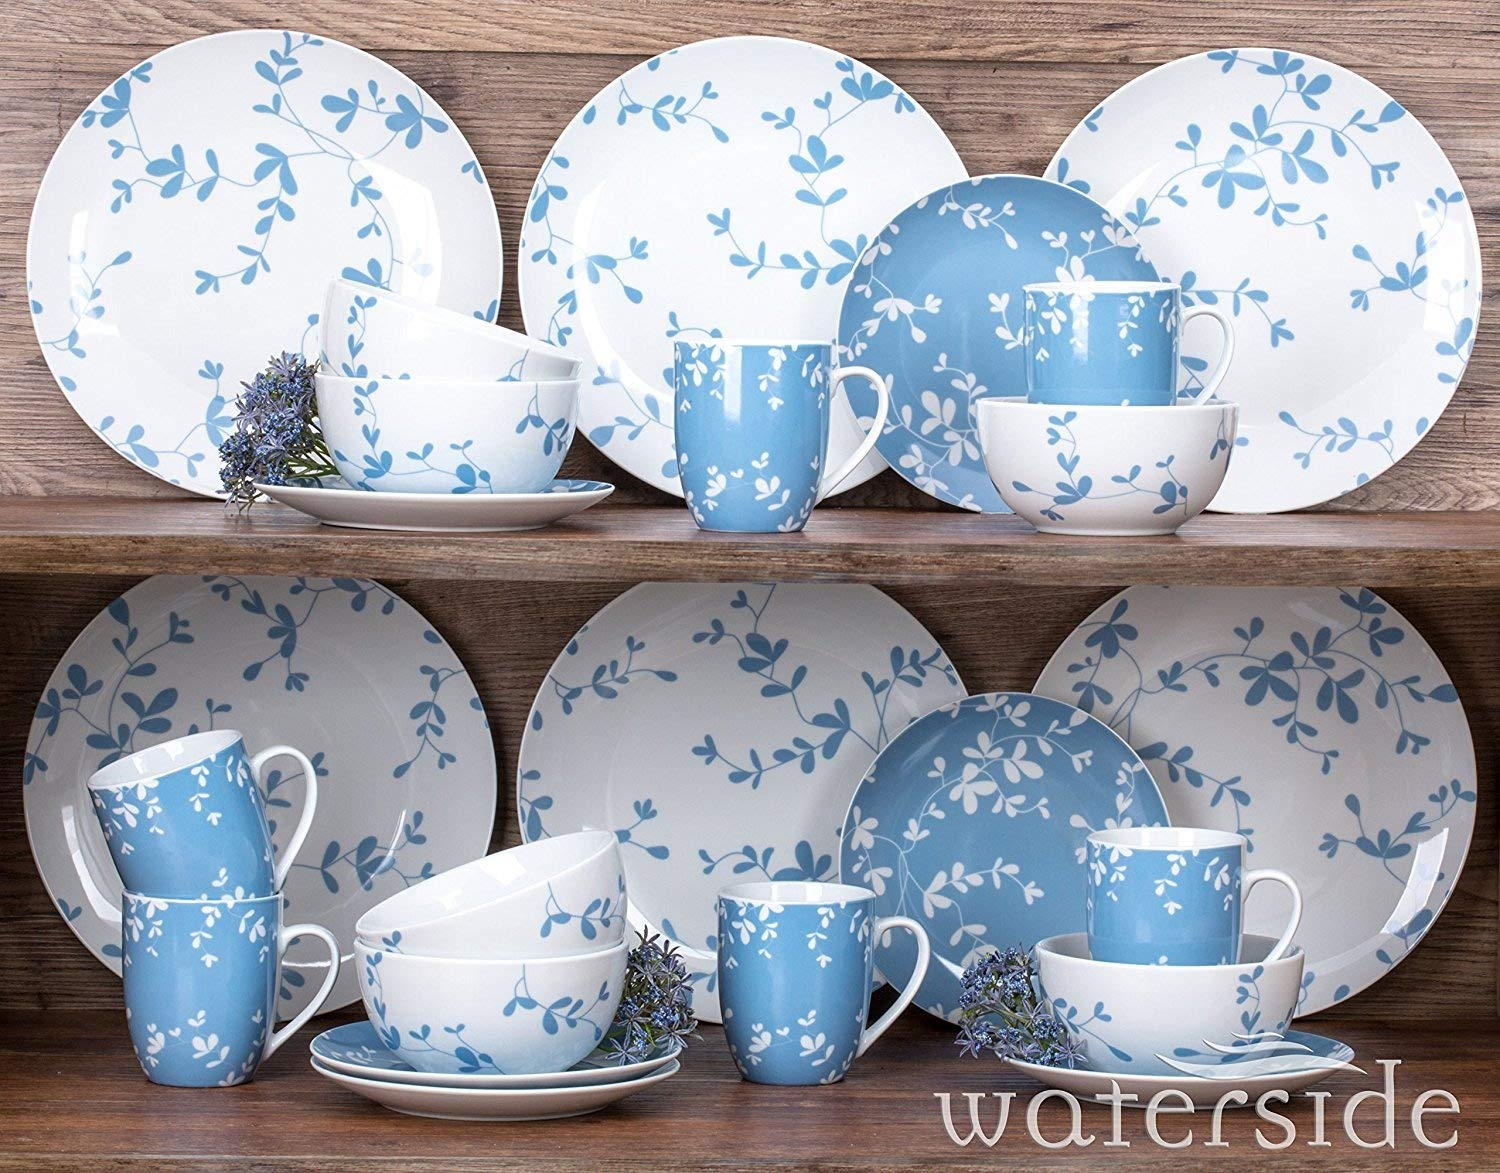 24 Piece Blue Meadow Dinner Set Waterside Fine China